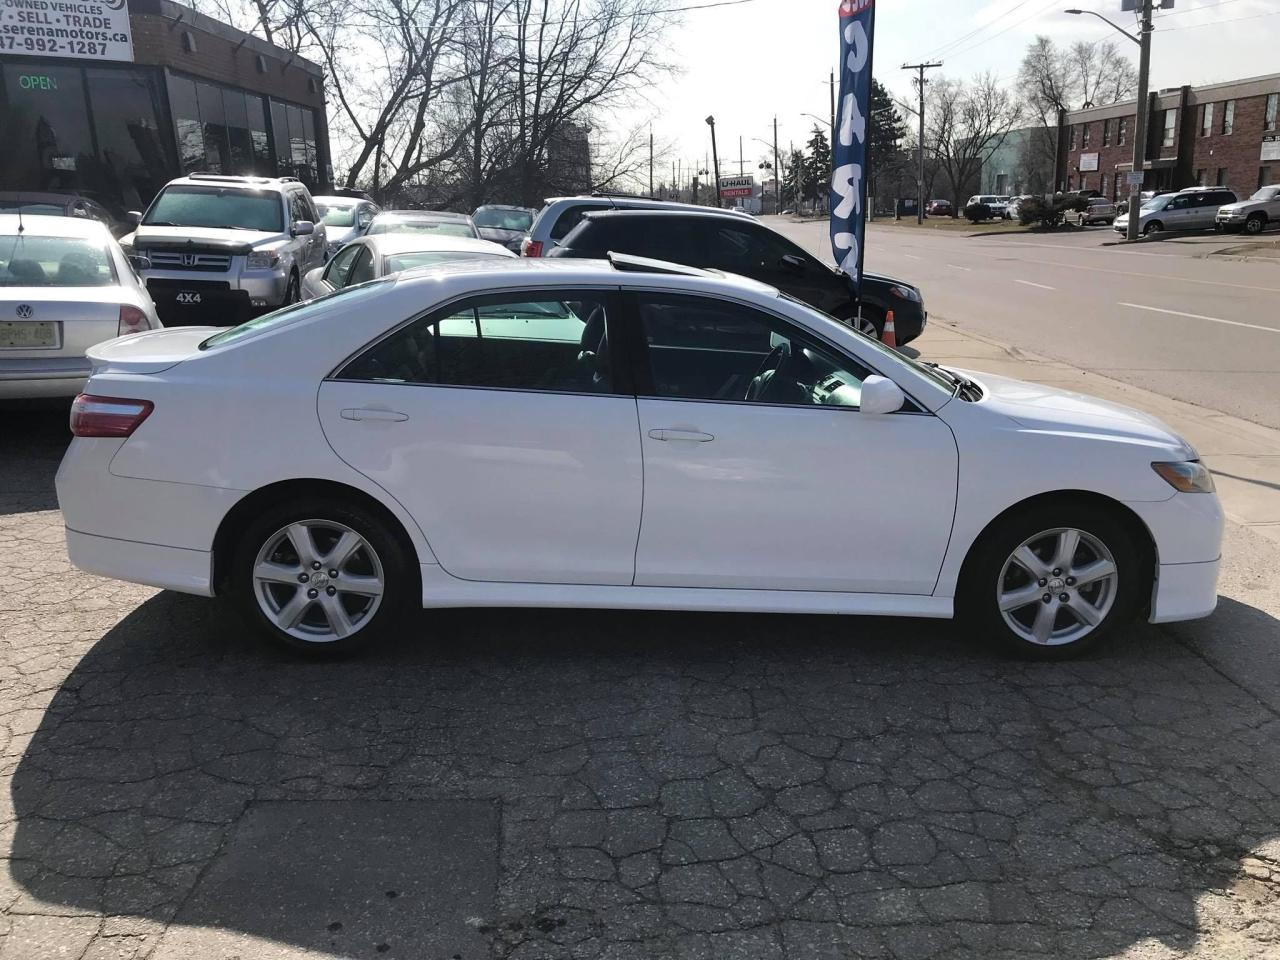 Used 2009 Toyota Camry Se For Sale In Mississauga Ontario Fuel Filter Location